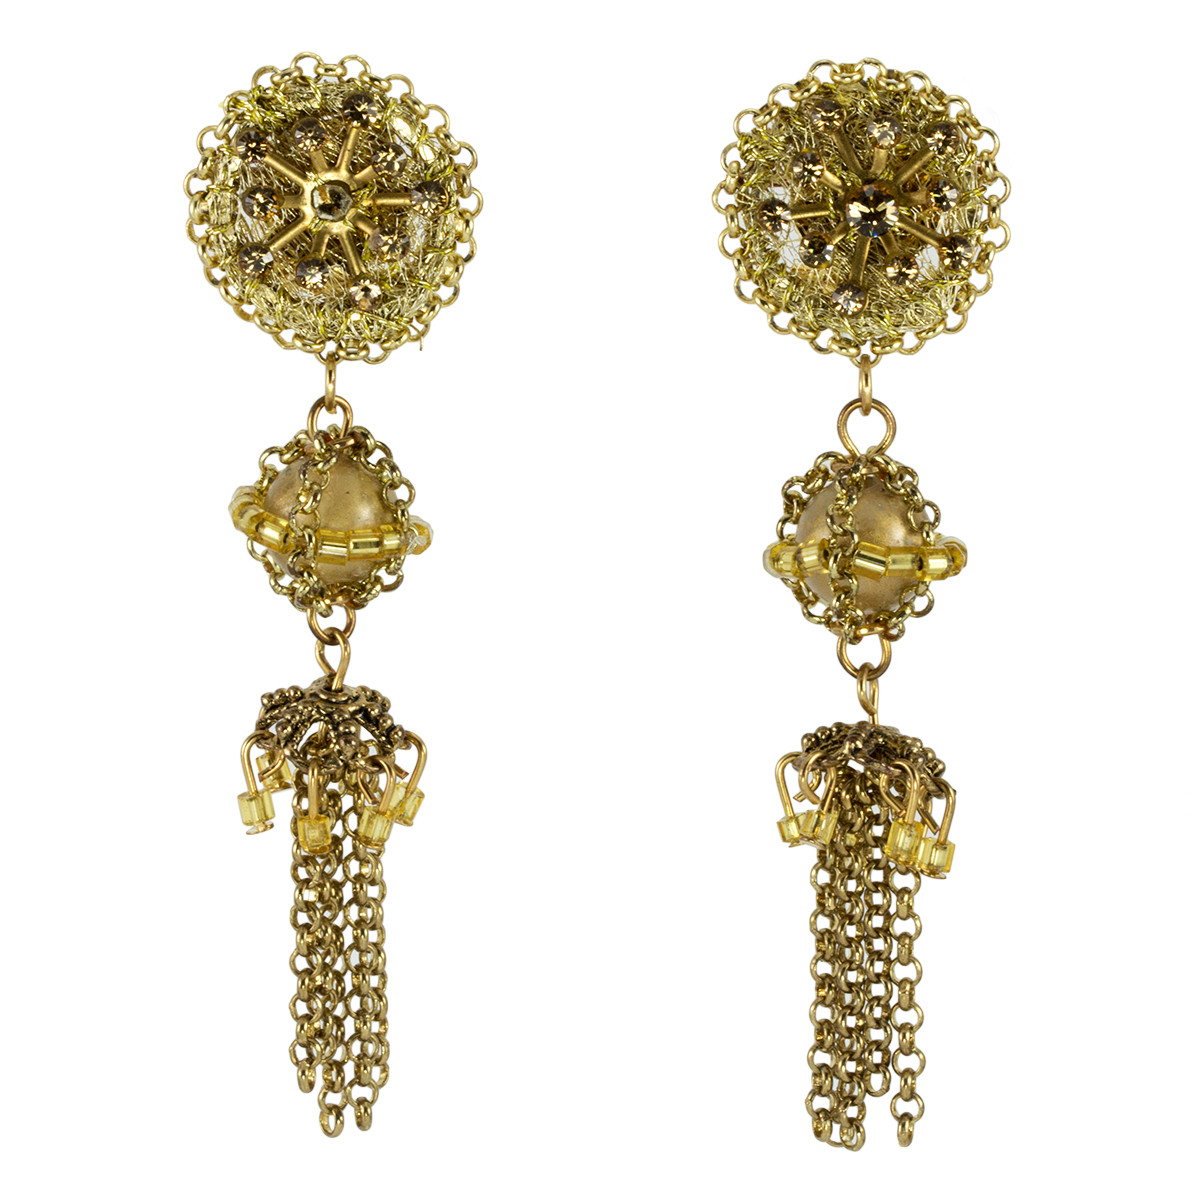 Anat Jewelry Golden River Fashion Net Gold Earrings